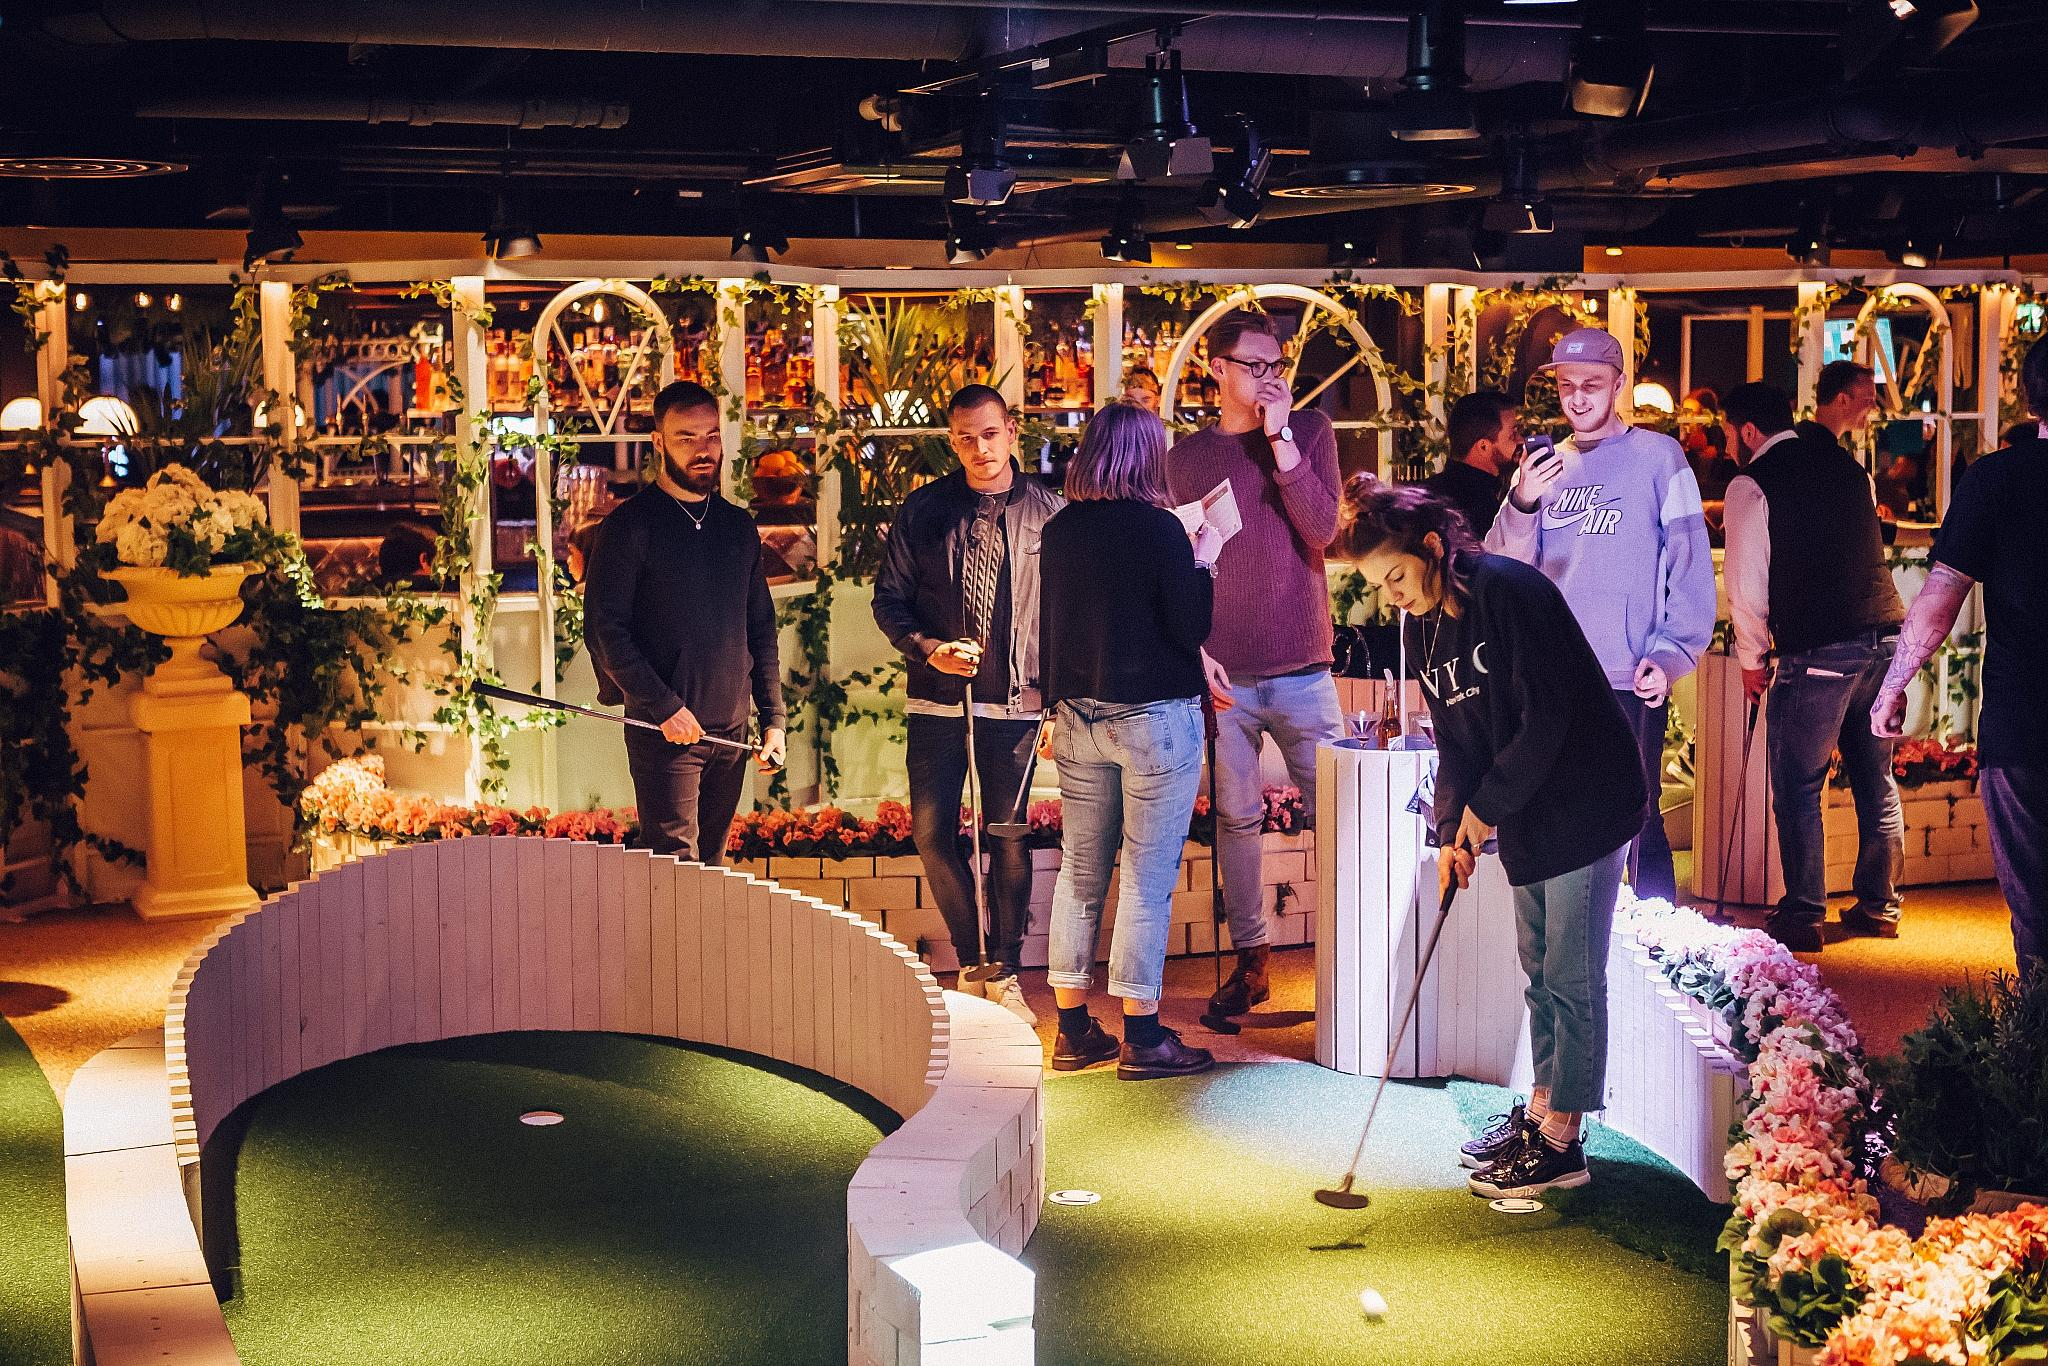 Crazy_golf_at_Swingers_West_End